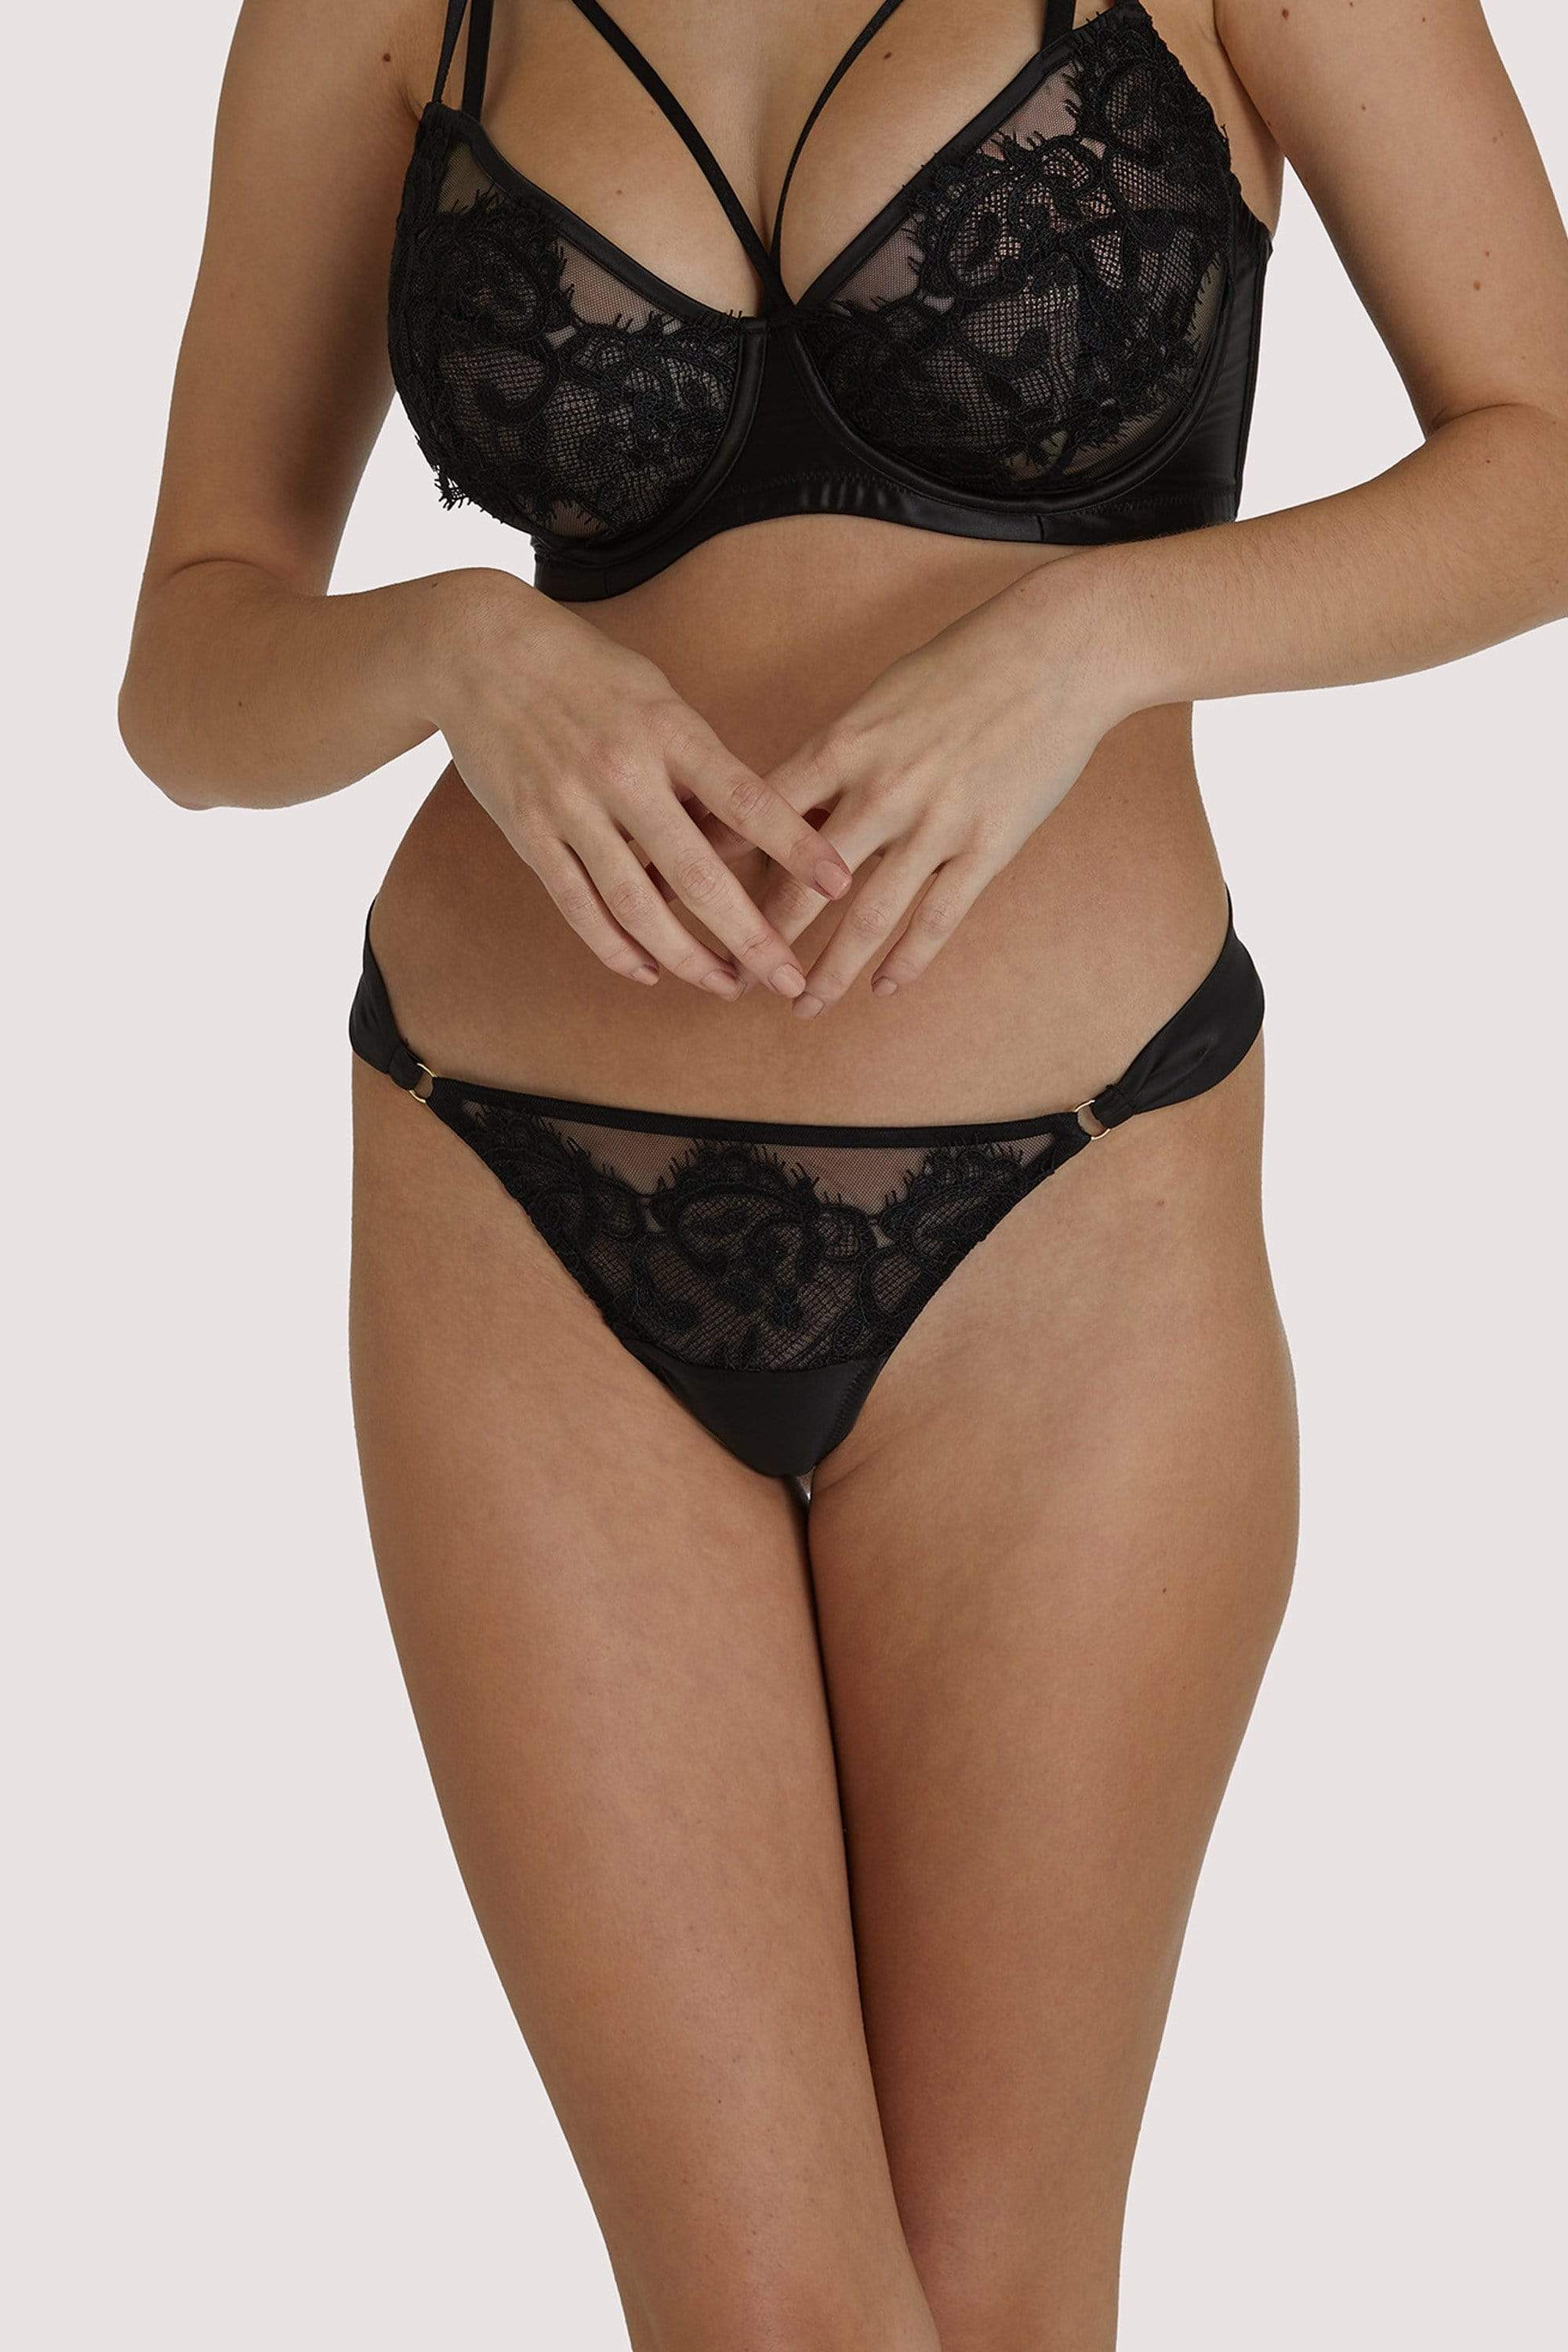 Playful Promises Anneliese Black Lace Thong UK 8 / US 4